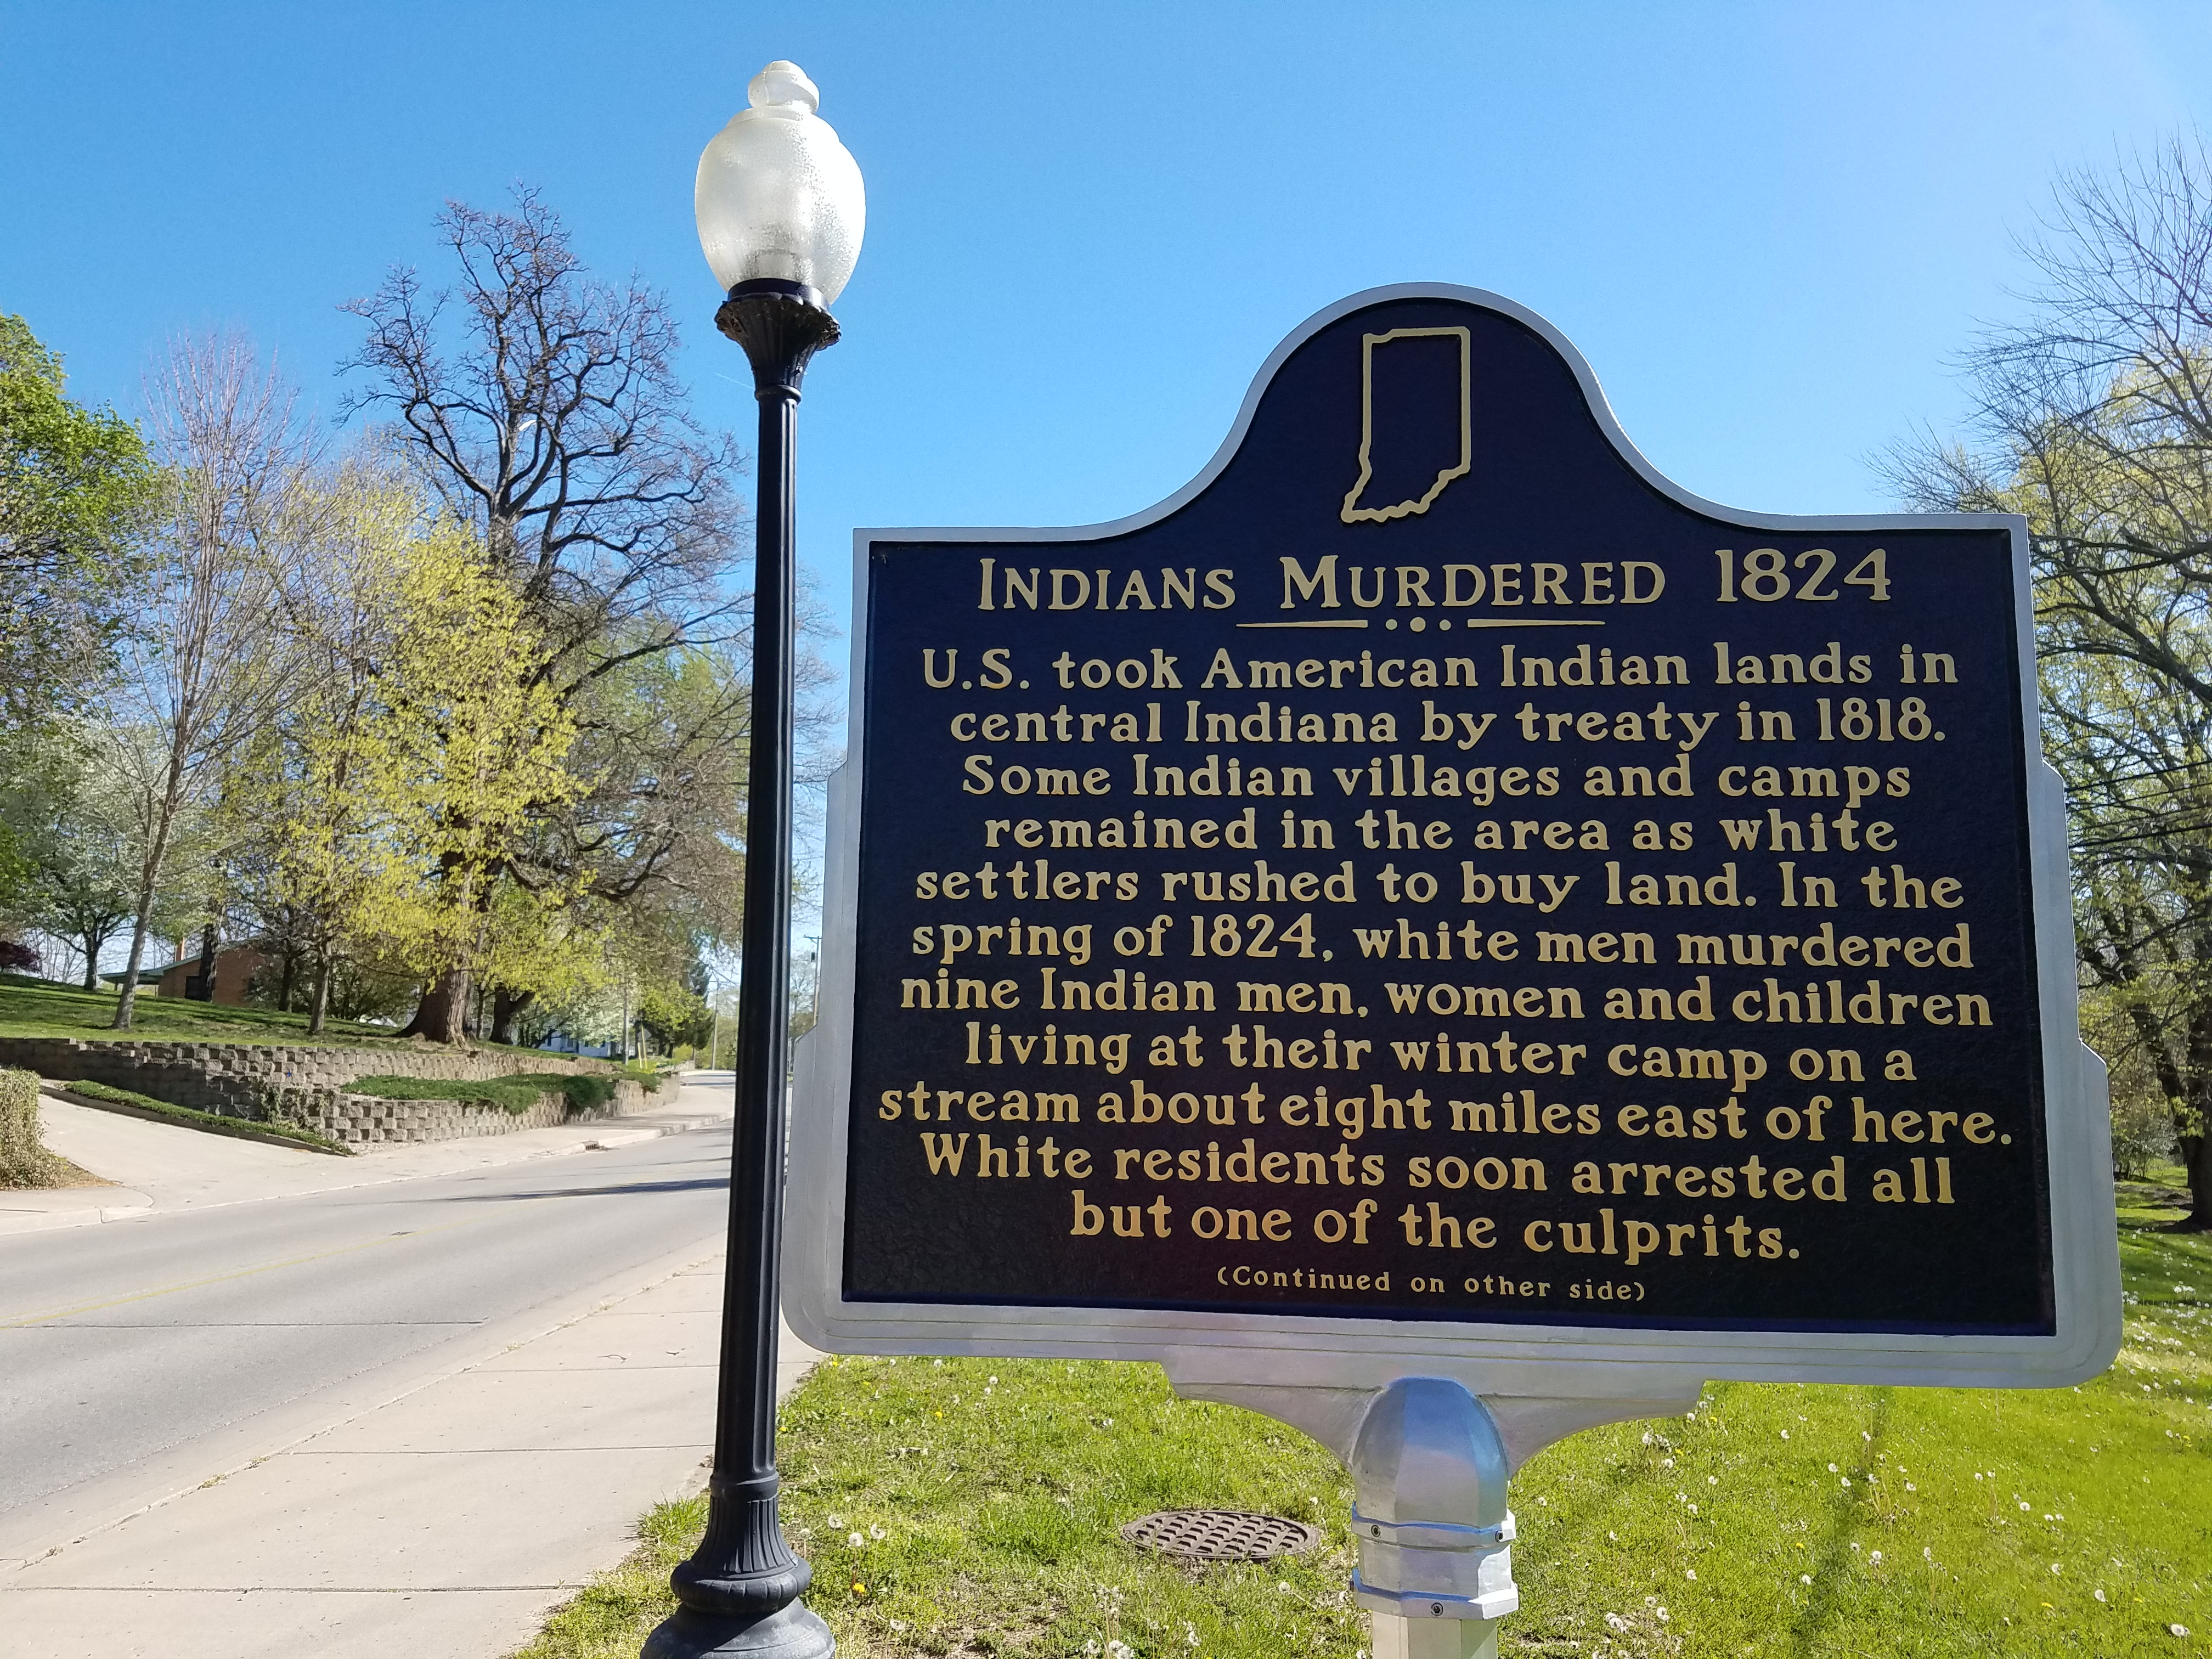 Indiana madison county markleville - Near The Spot Where The Executions Were Held Stands This Indiana Historic Marker Commemorating The Event It Is On The North Bank Of Fall Creek Within The